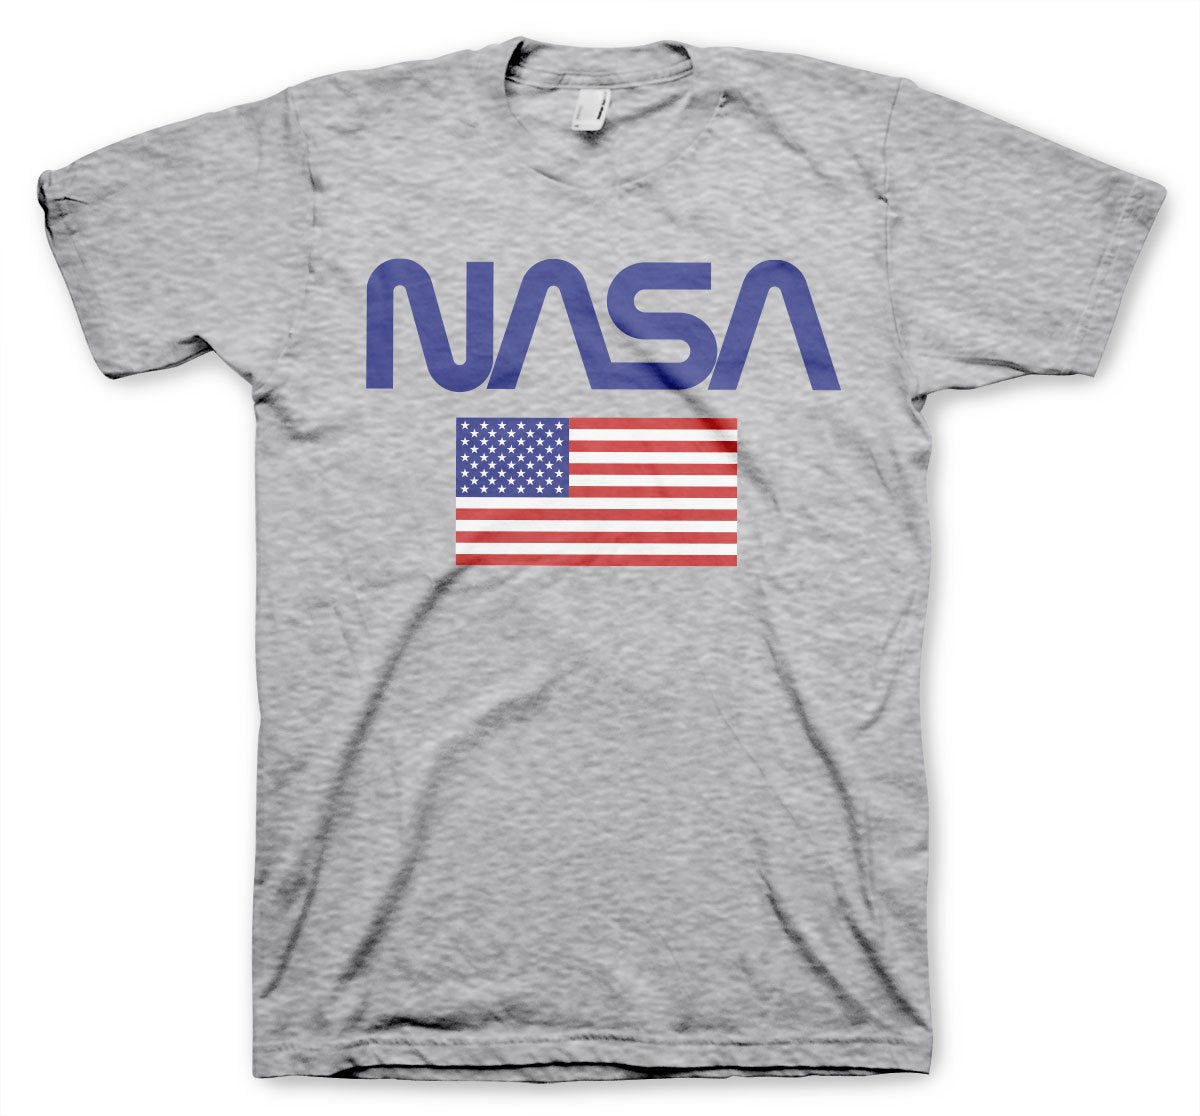 NASA Old Glory T-Shirt - Postees